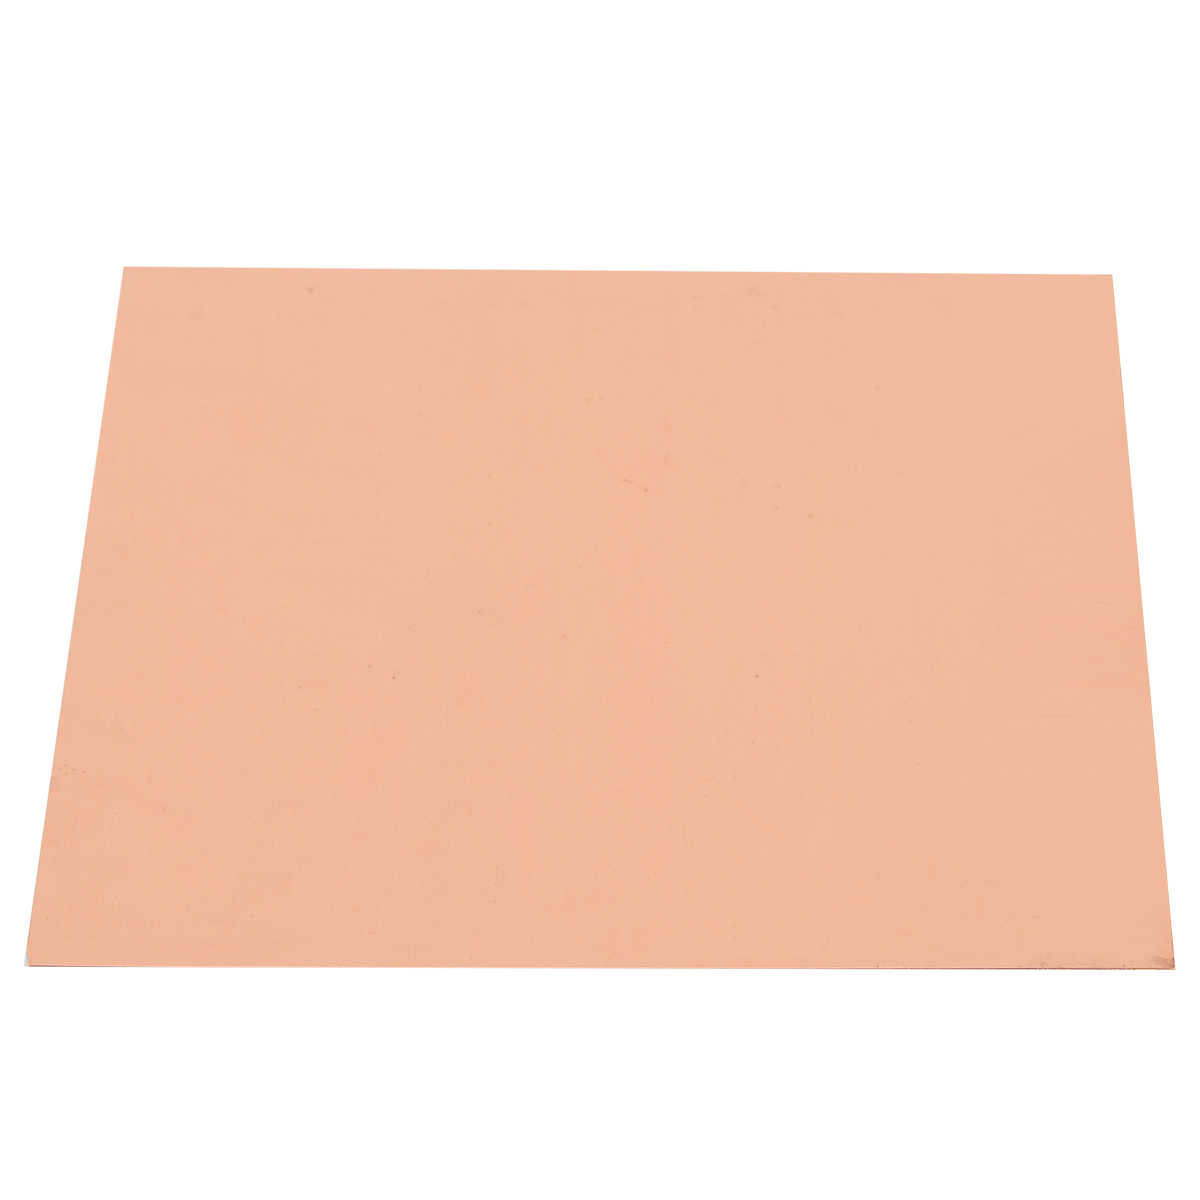 1Pcs 100x100x0.2mm Copper Plate 99.9% High Purity Copper Sheet Cu Metal Flat Foil Copper Plate For Welding Brazing Tools